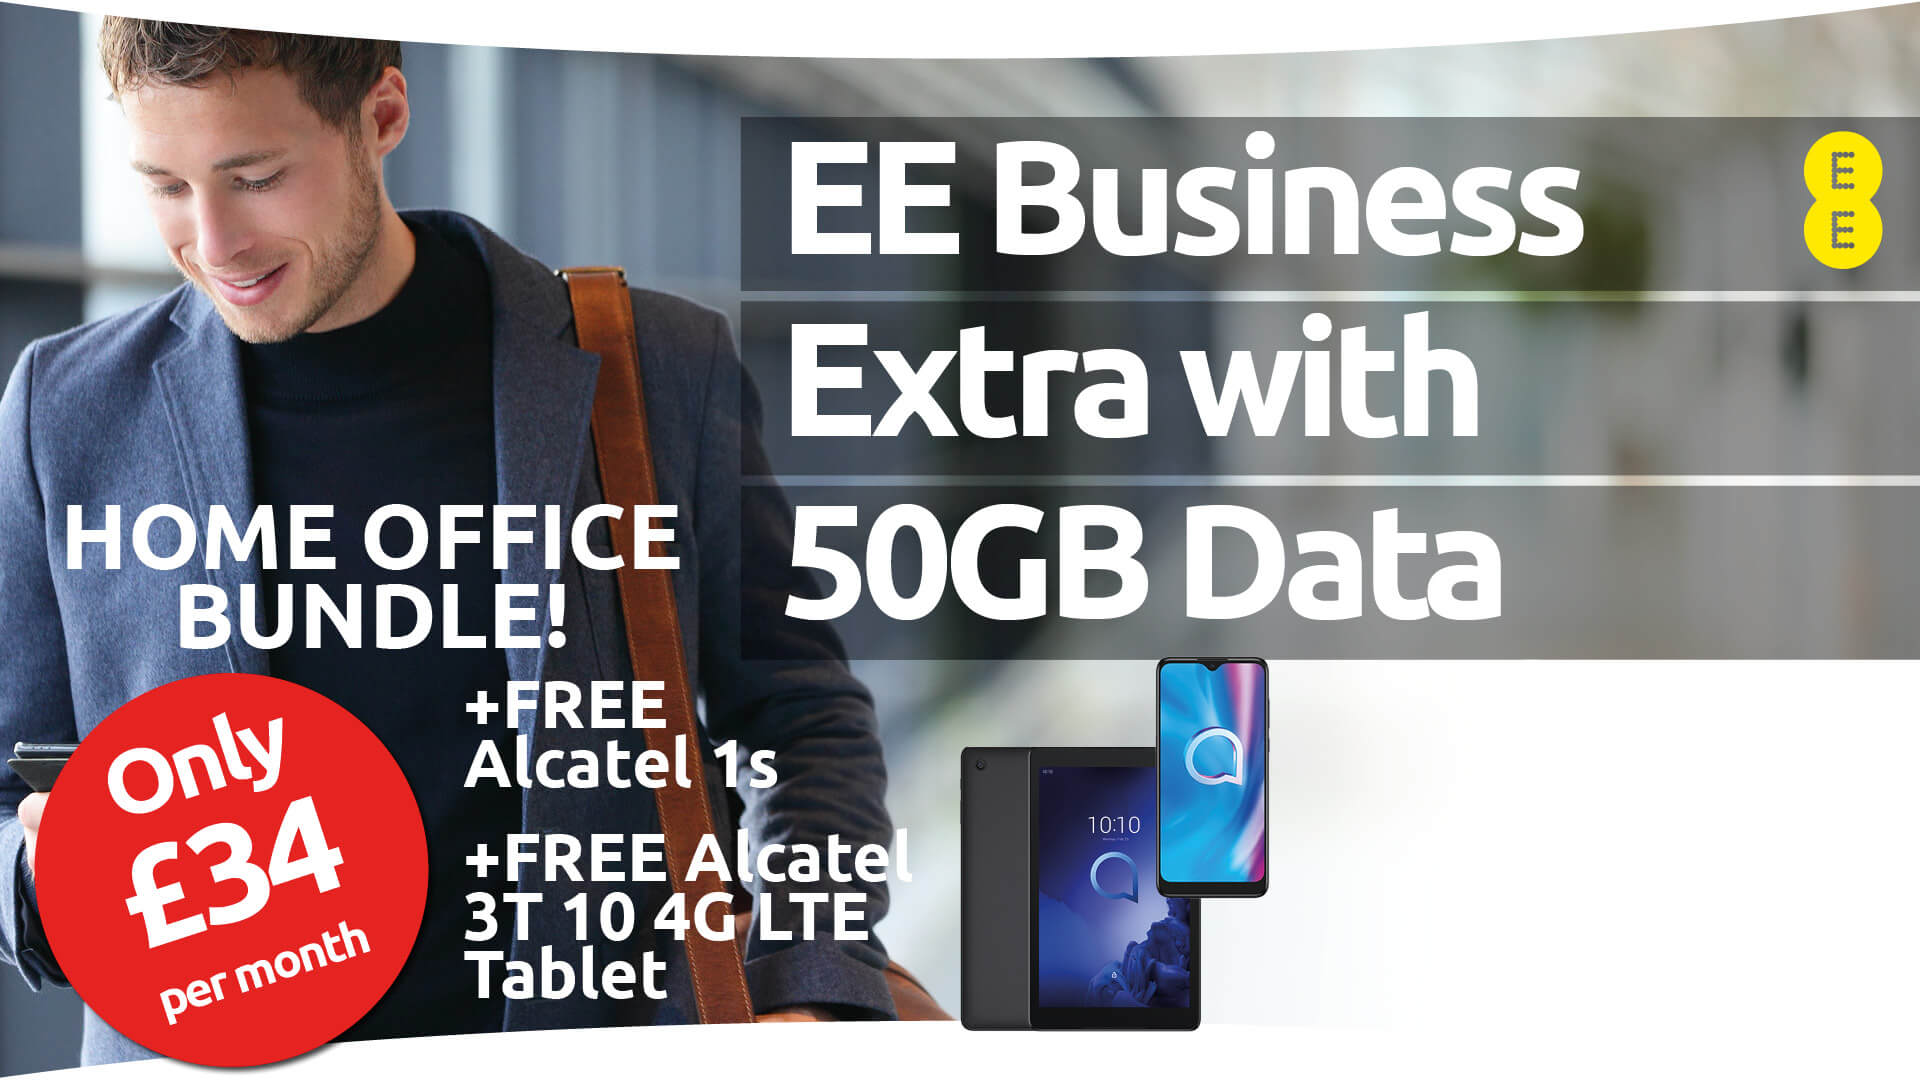 Telecom network provider offering mobile solutions to businesses